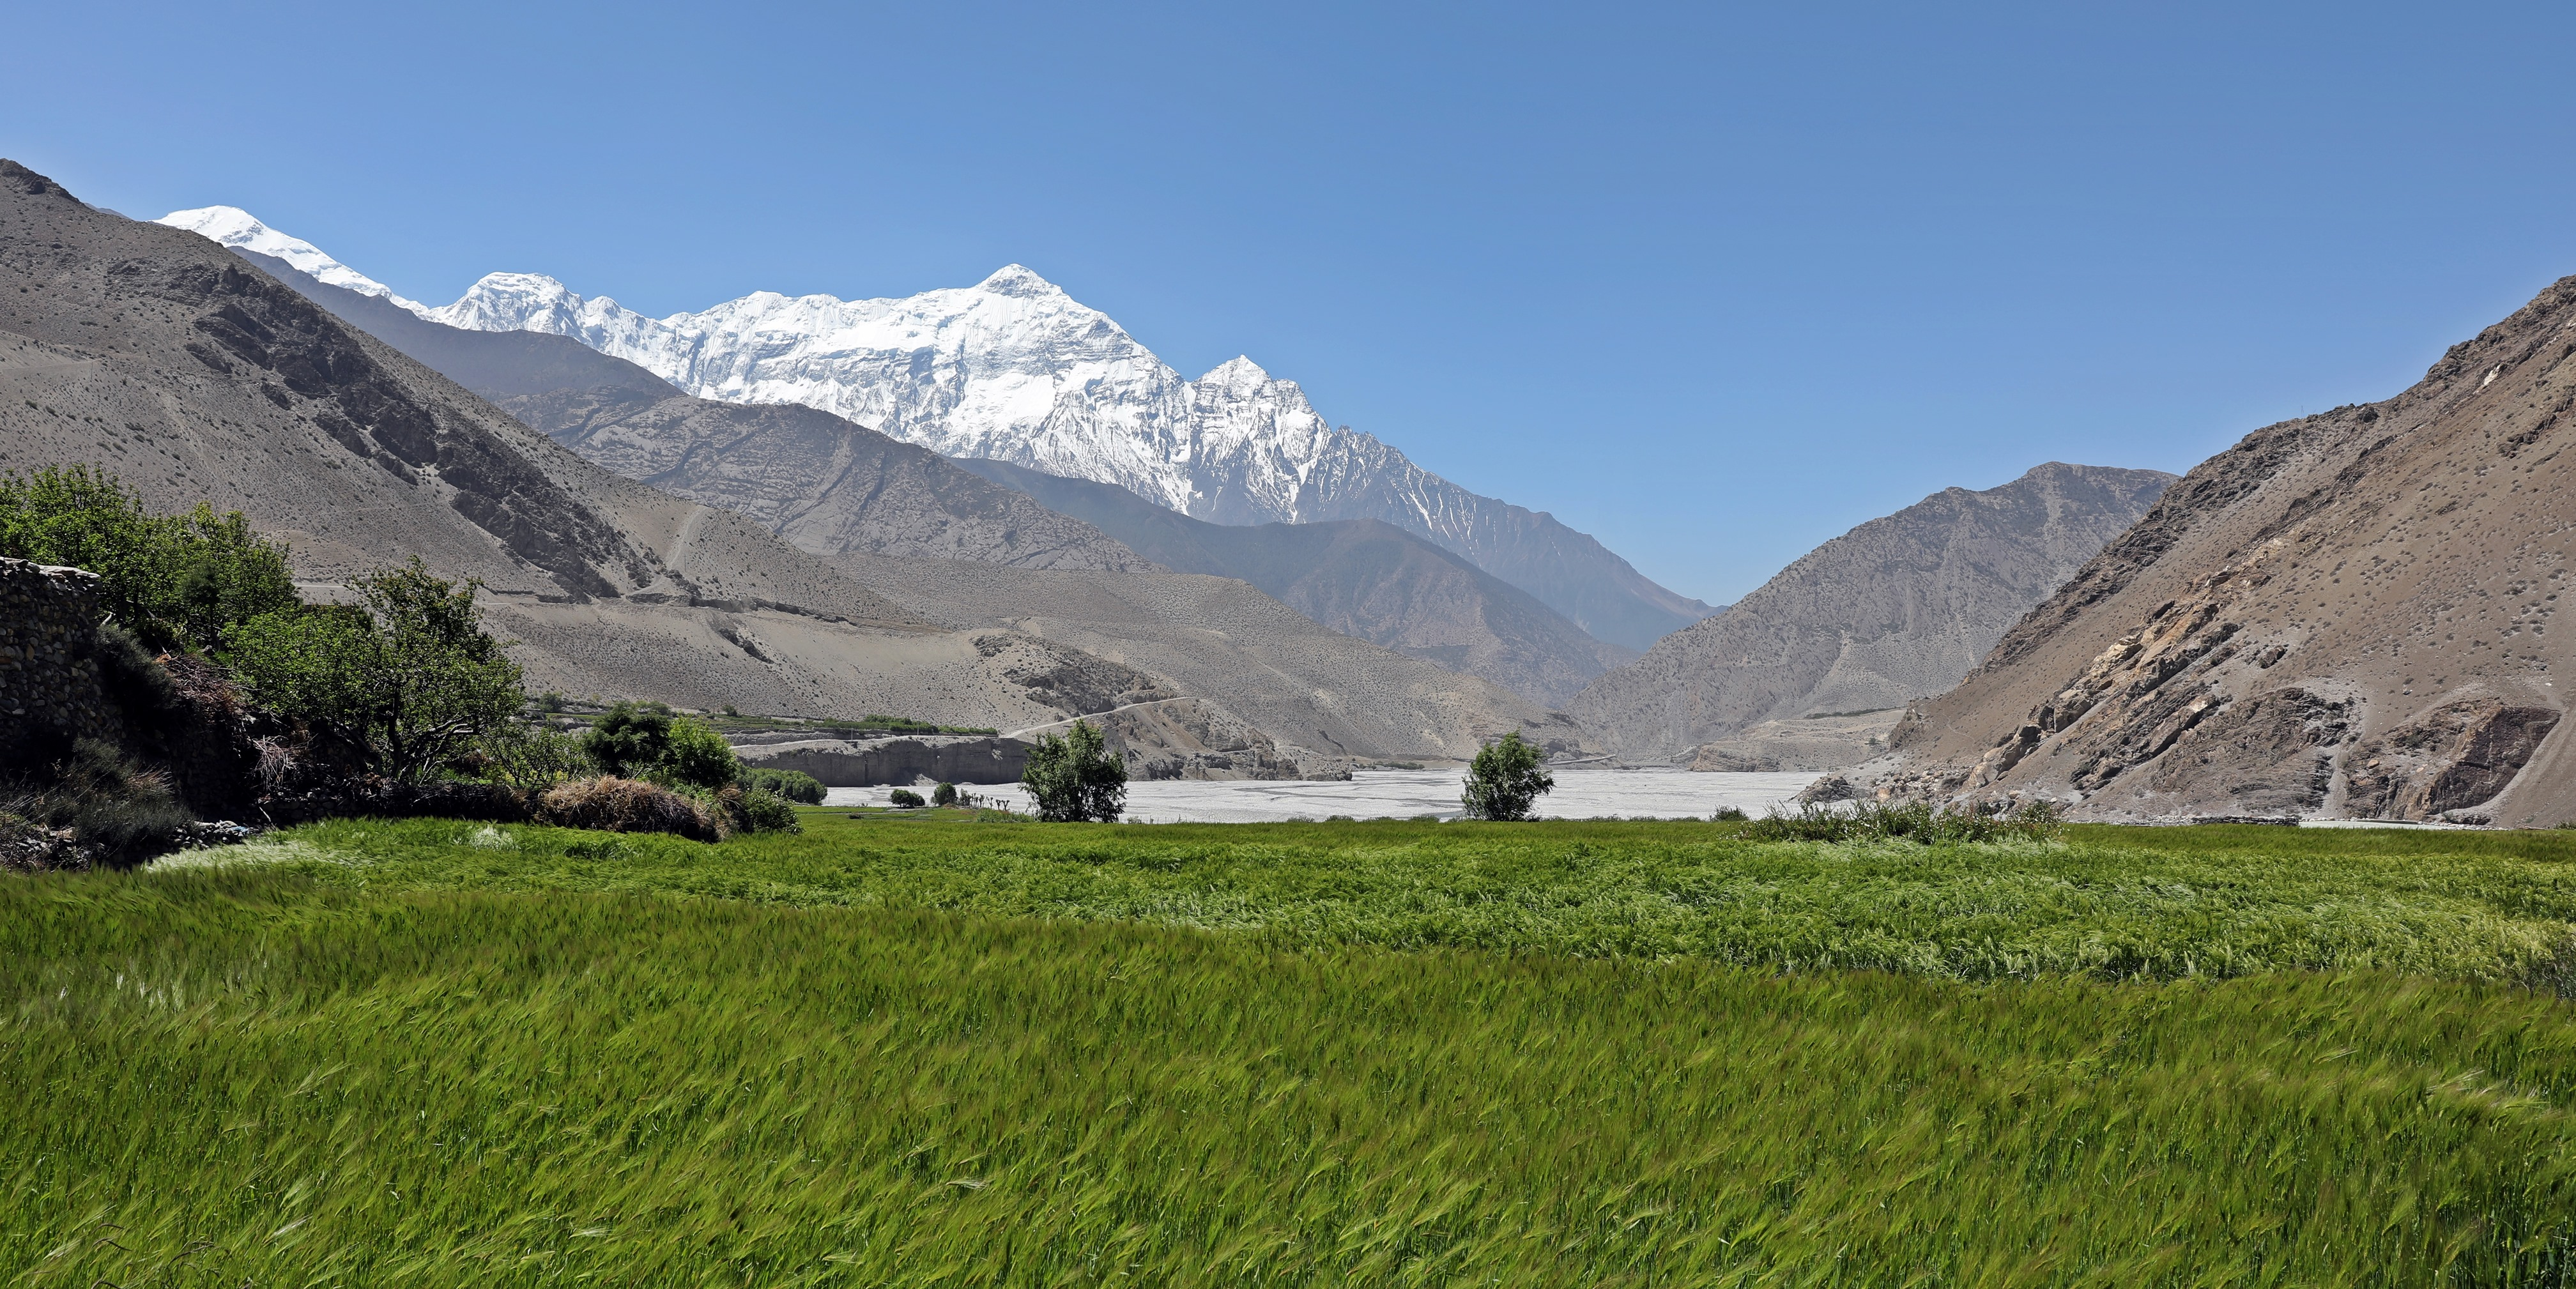 View of Annapurna Range from Upper Mustang trail